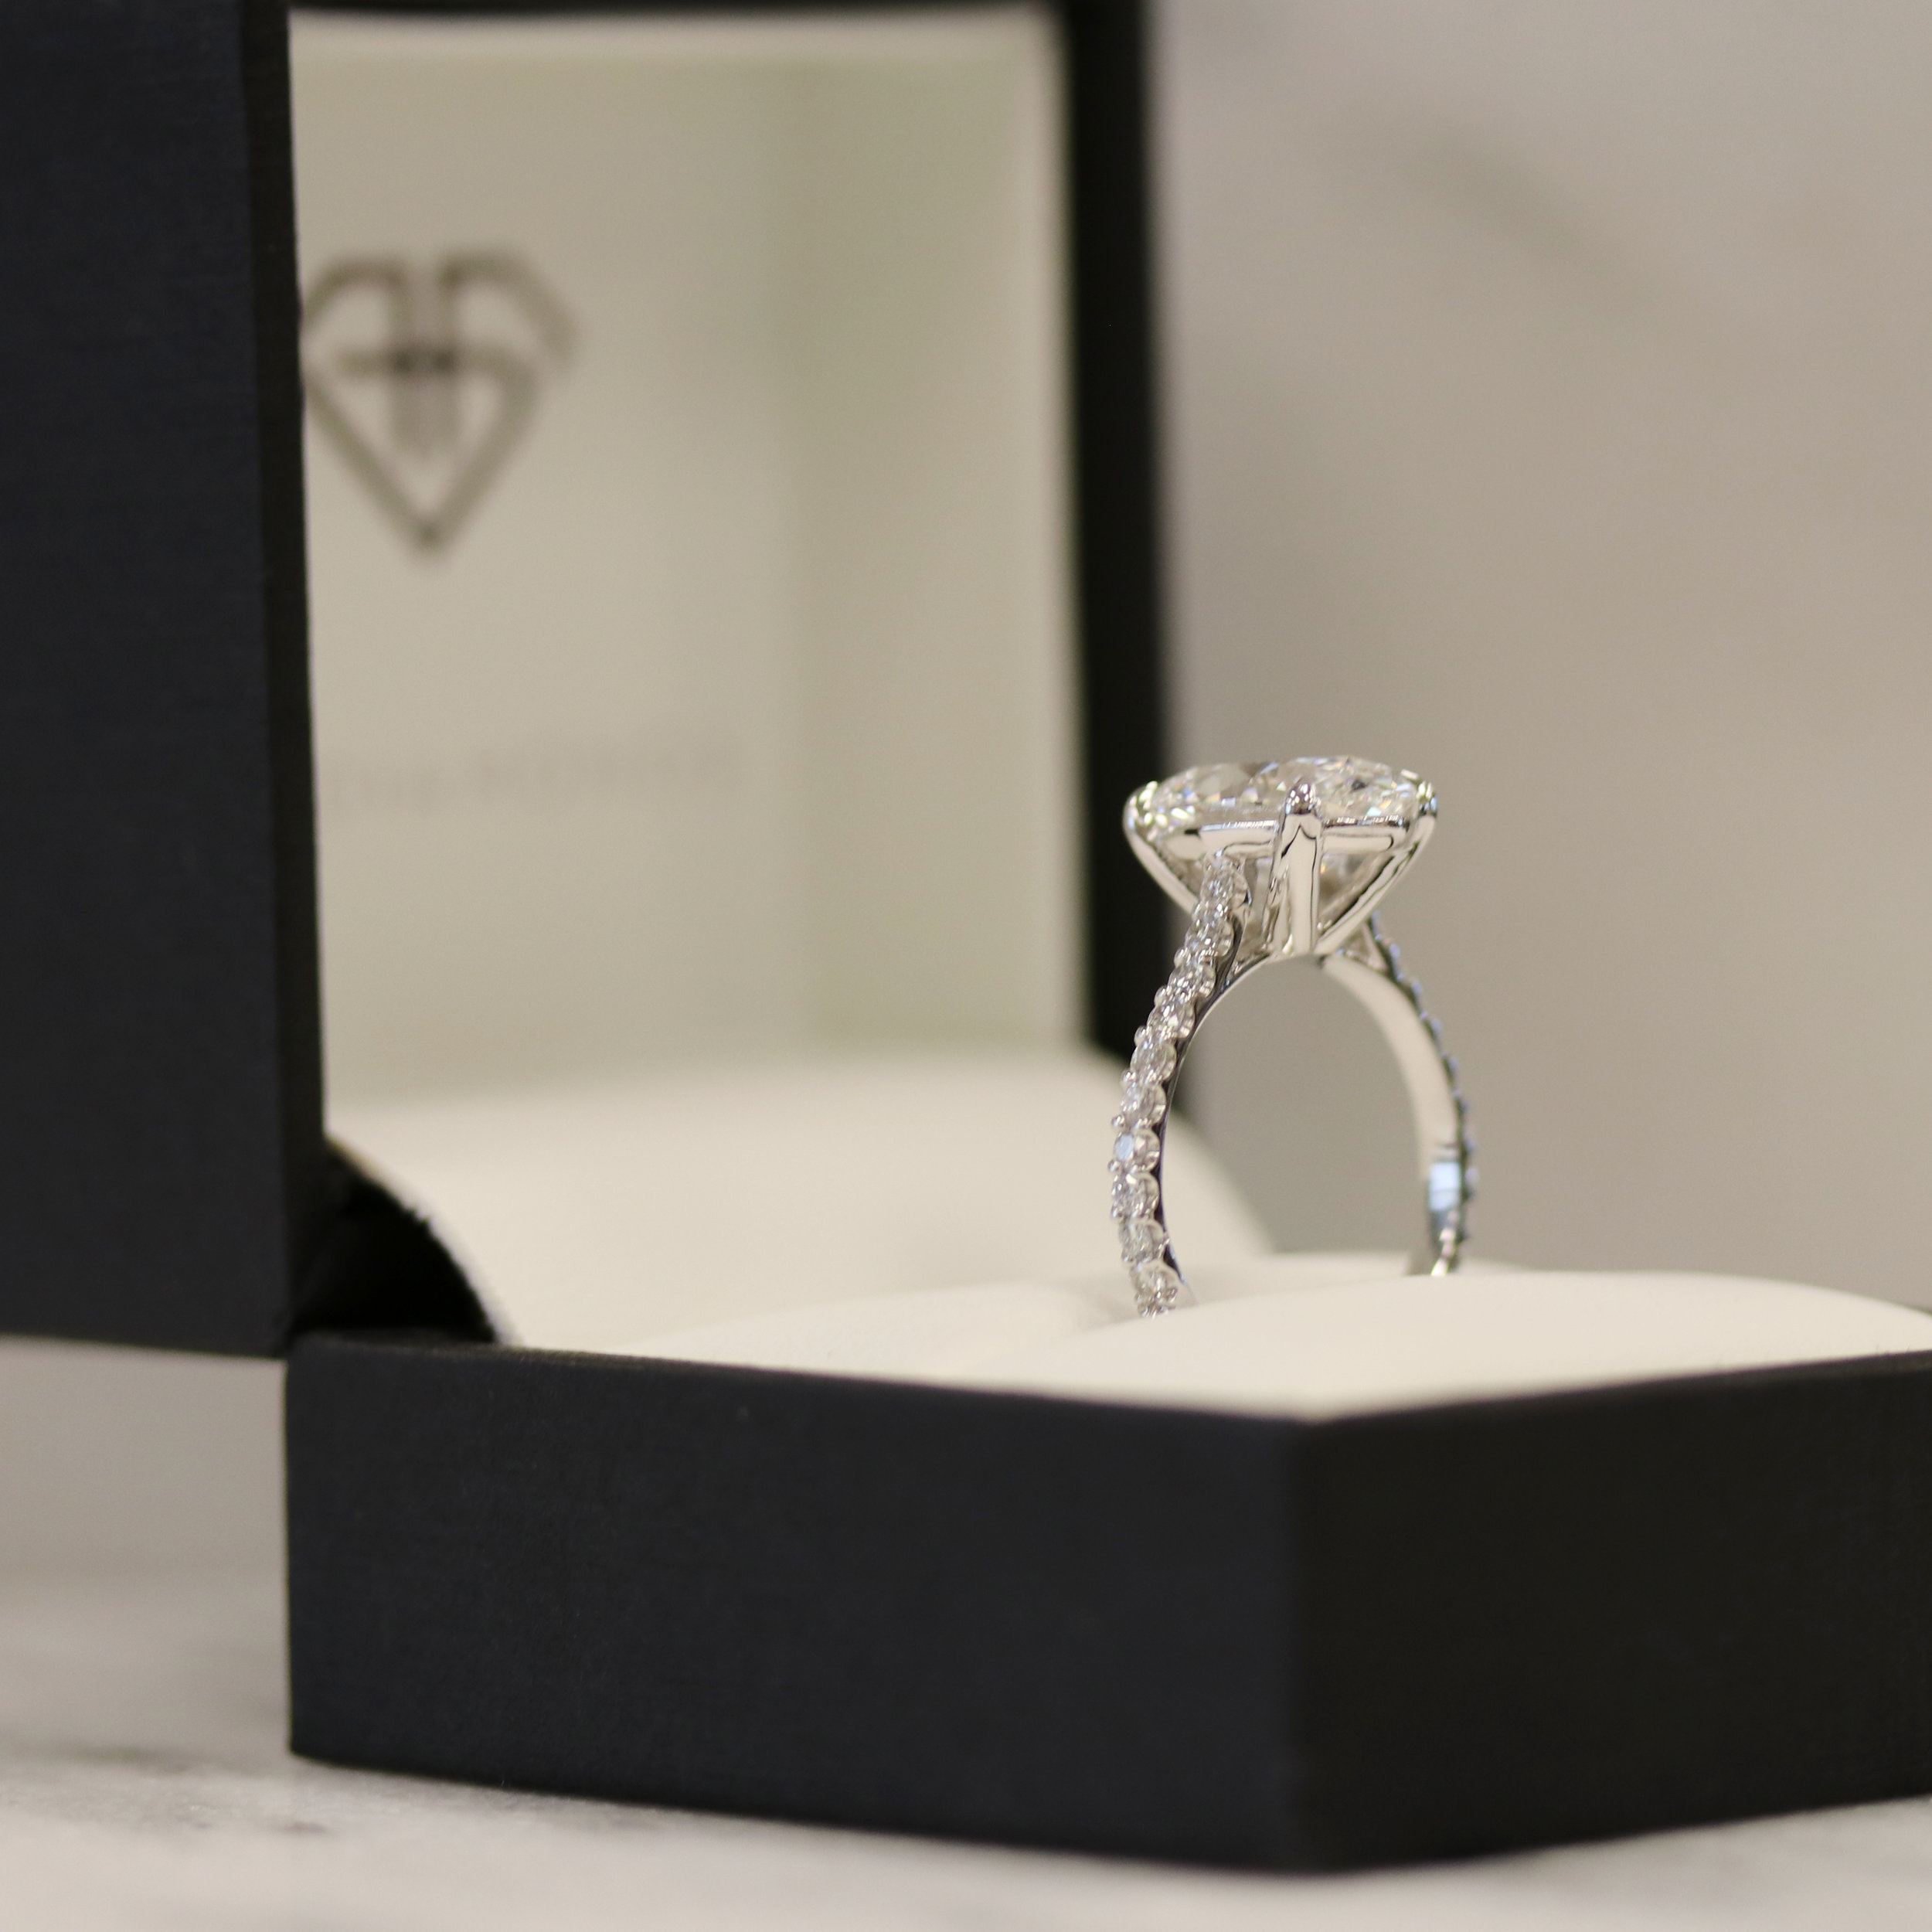 3 carat lab grown oval diamond engagement ring with diamond band setting